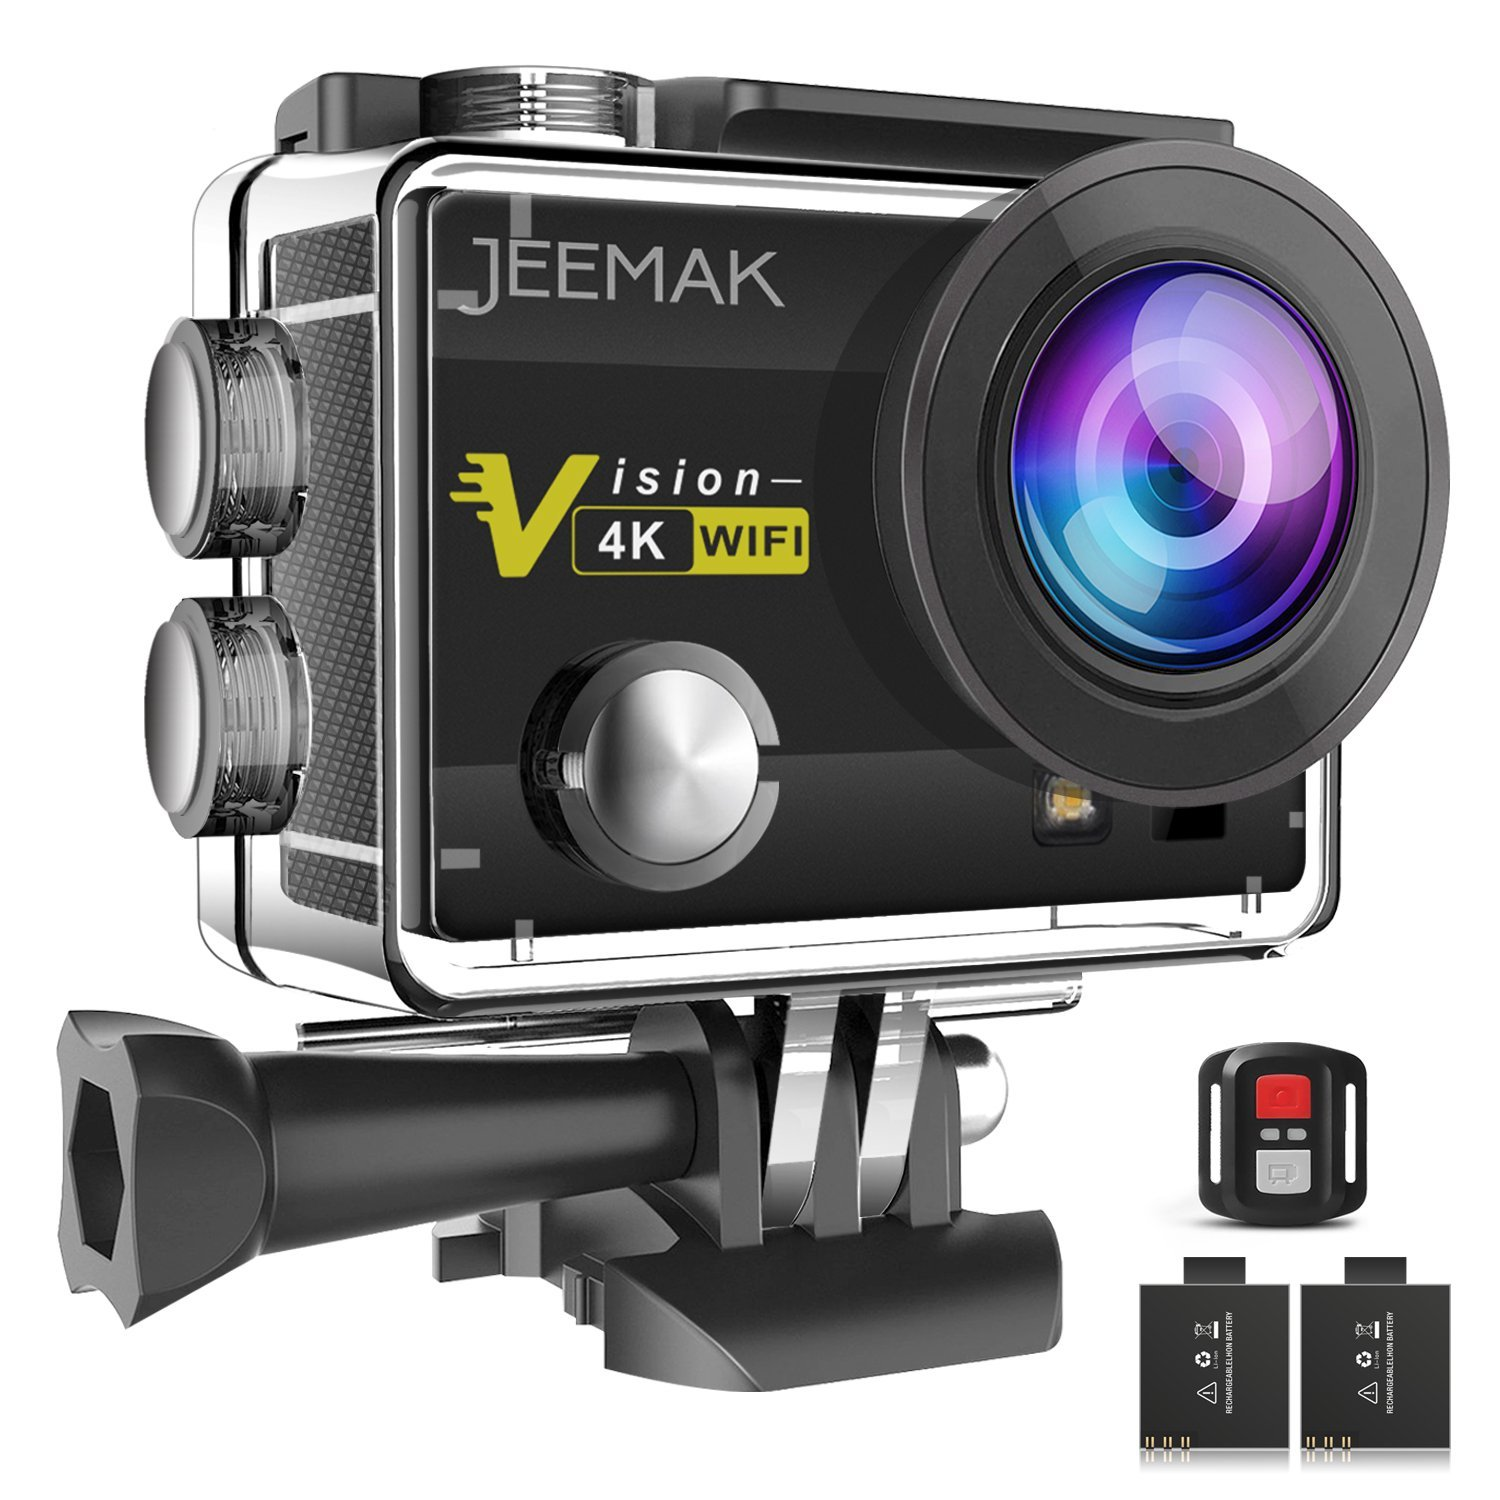 JEEMAK Action Camera 4K 16MP WiFi Underwater 30m Waterproof Cam 170° Wide Angle Len with Remote Control 2 Pcs  Rechargeable Batteries and Mounting Accessories Kits